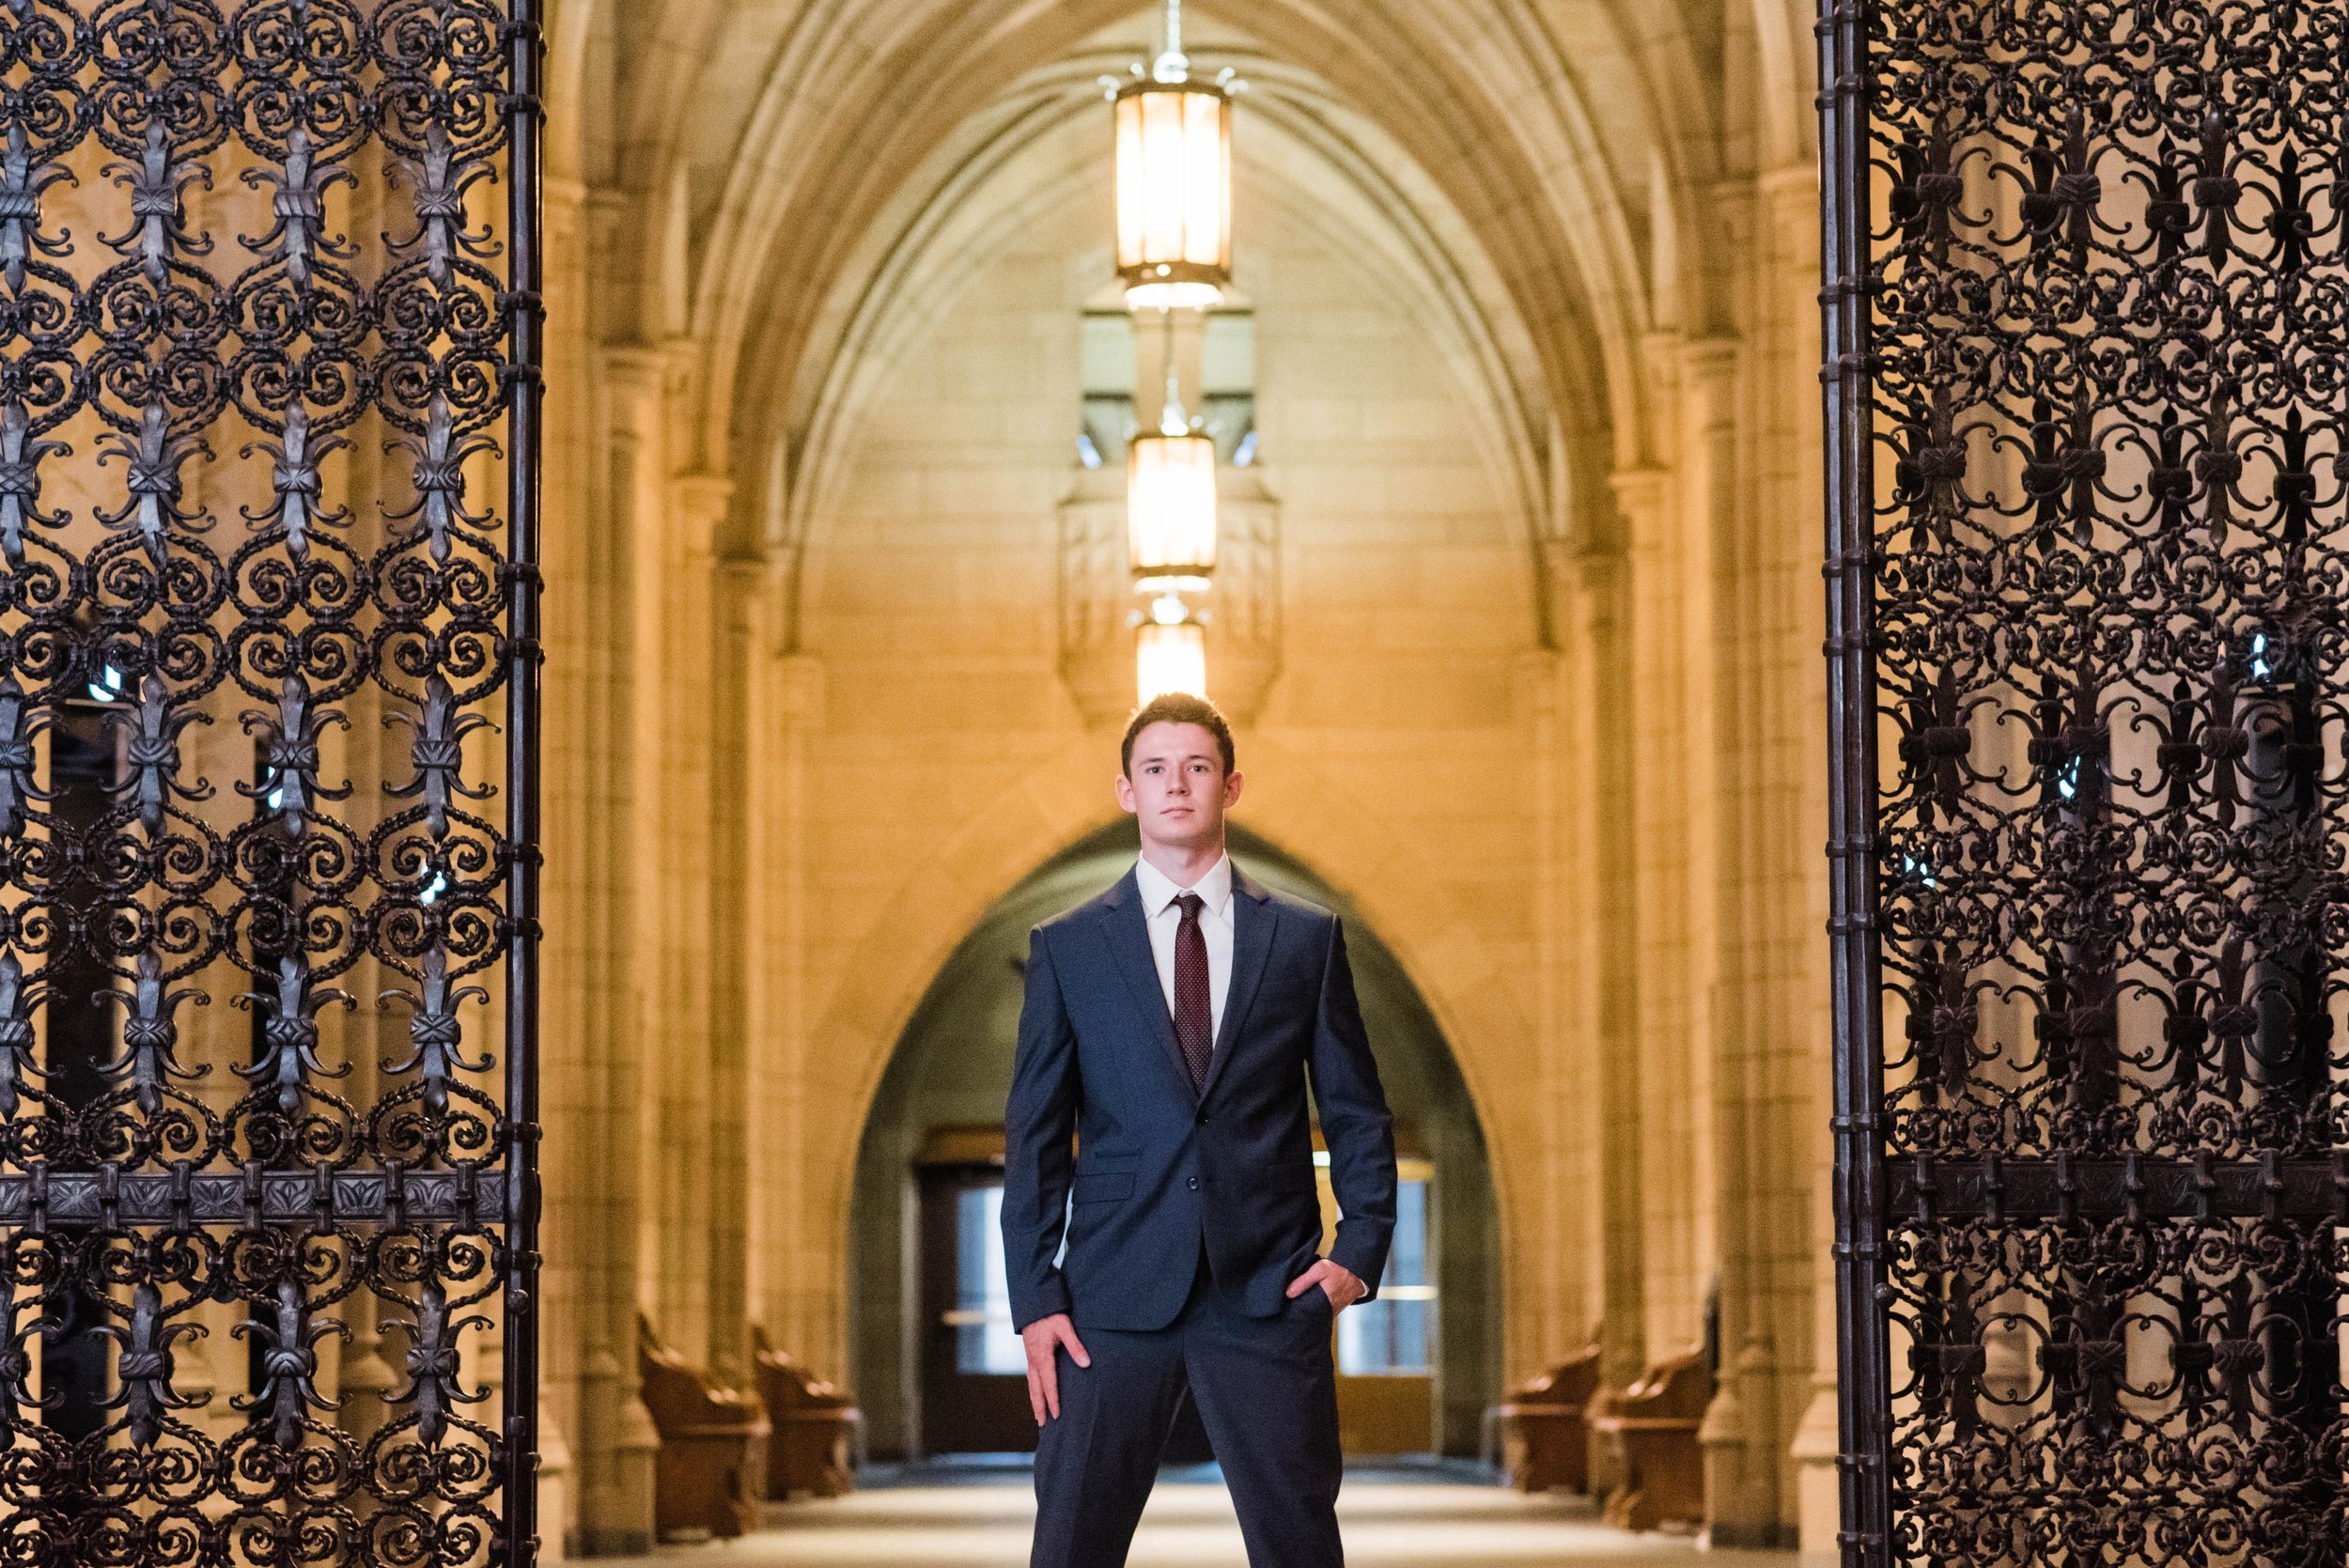 cathedral of learning senior portrait photographer